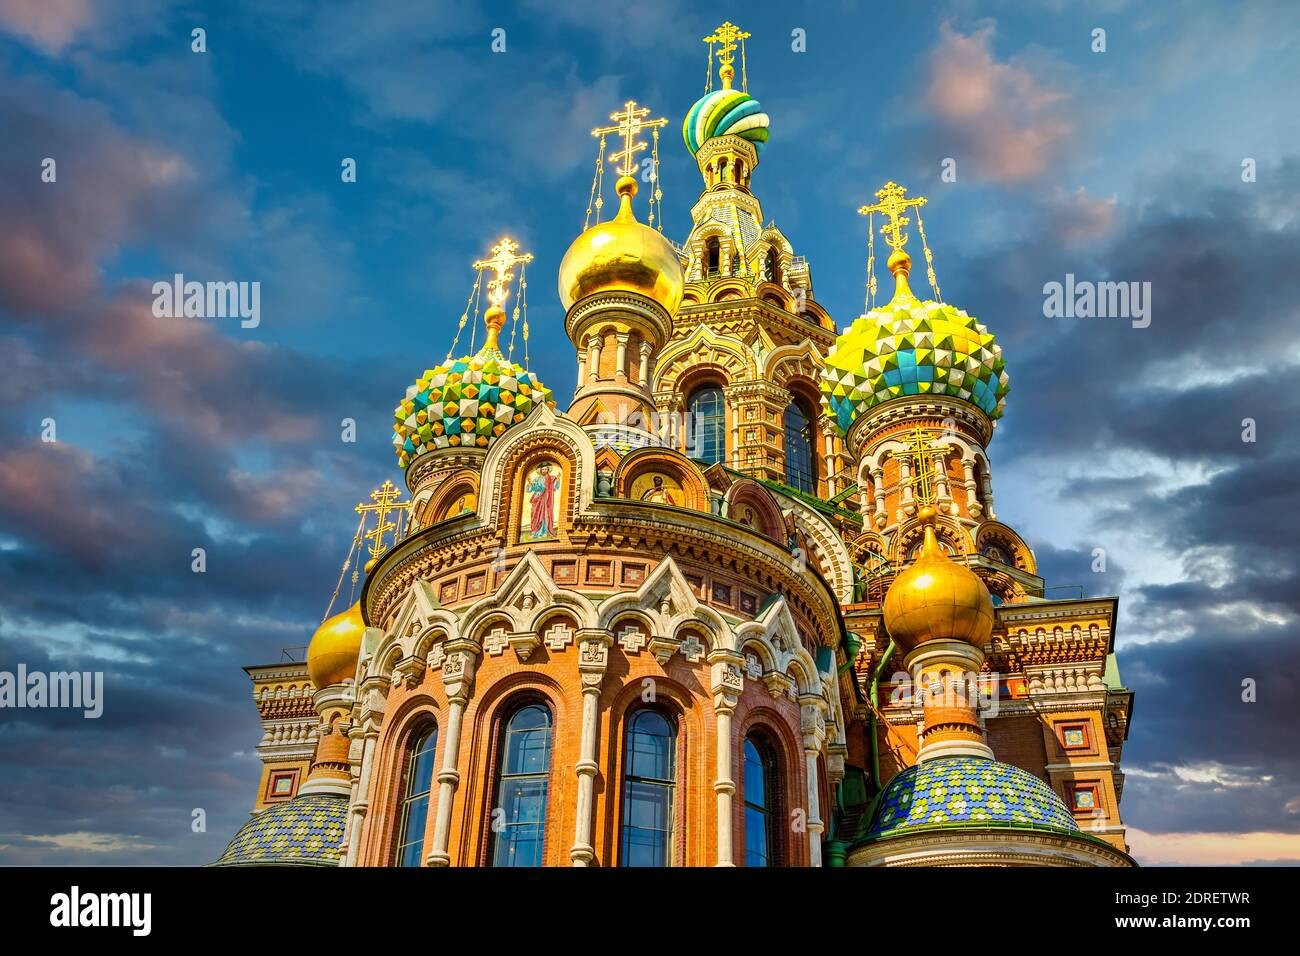 Church of the Savior on Spilled Blood in St. Petersburg, Russia Stock Photo